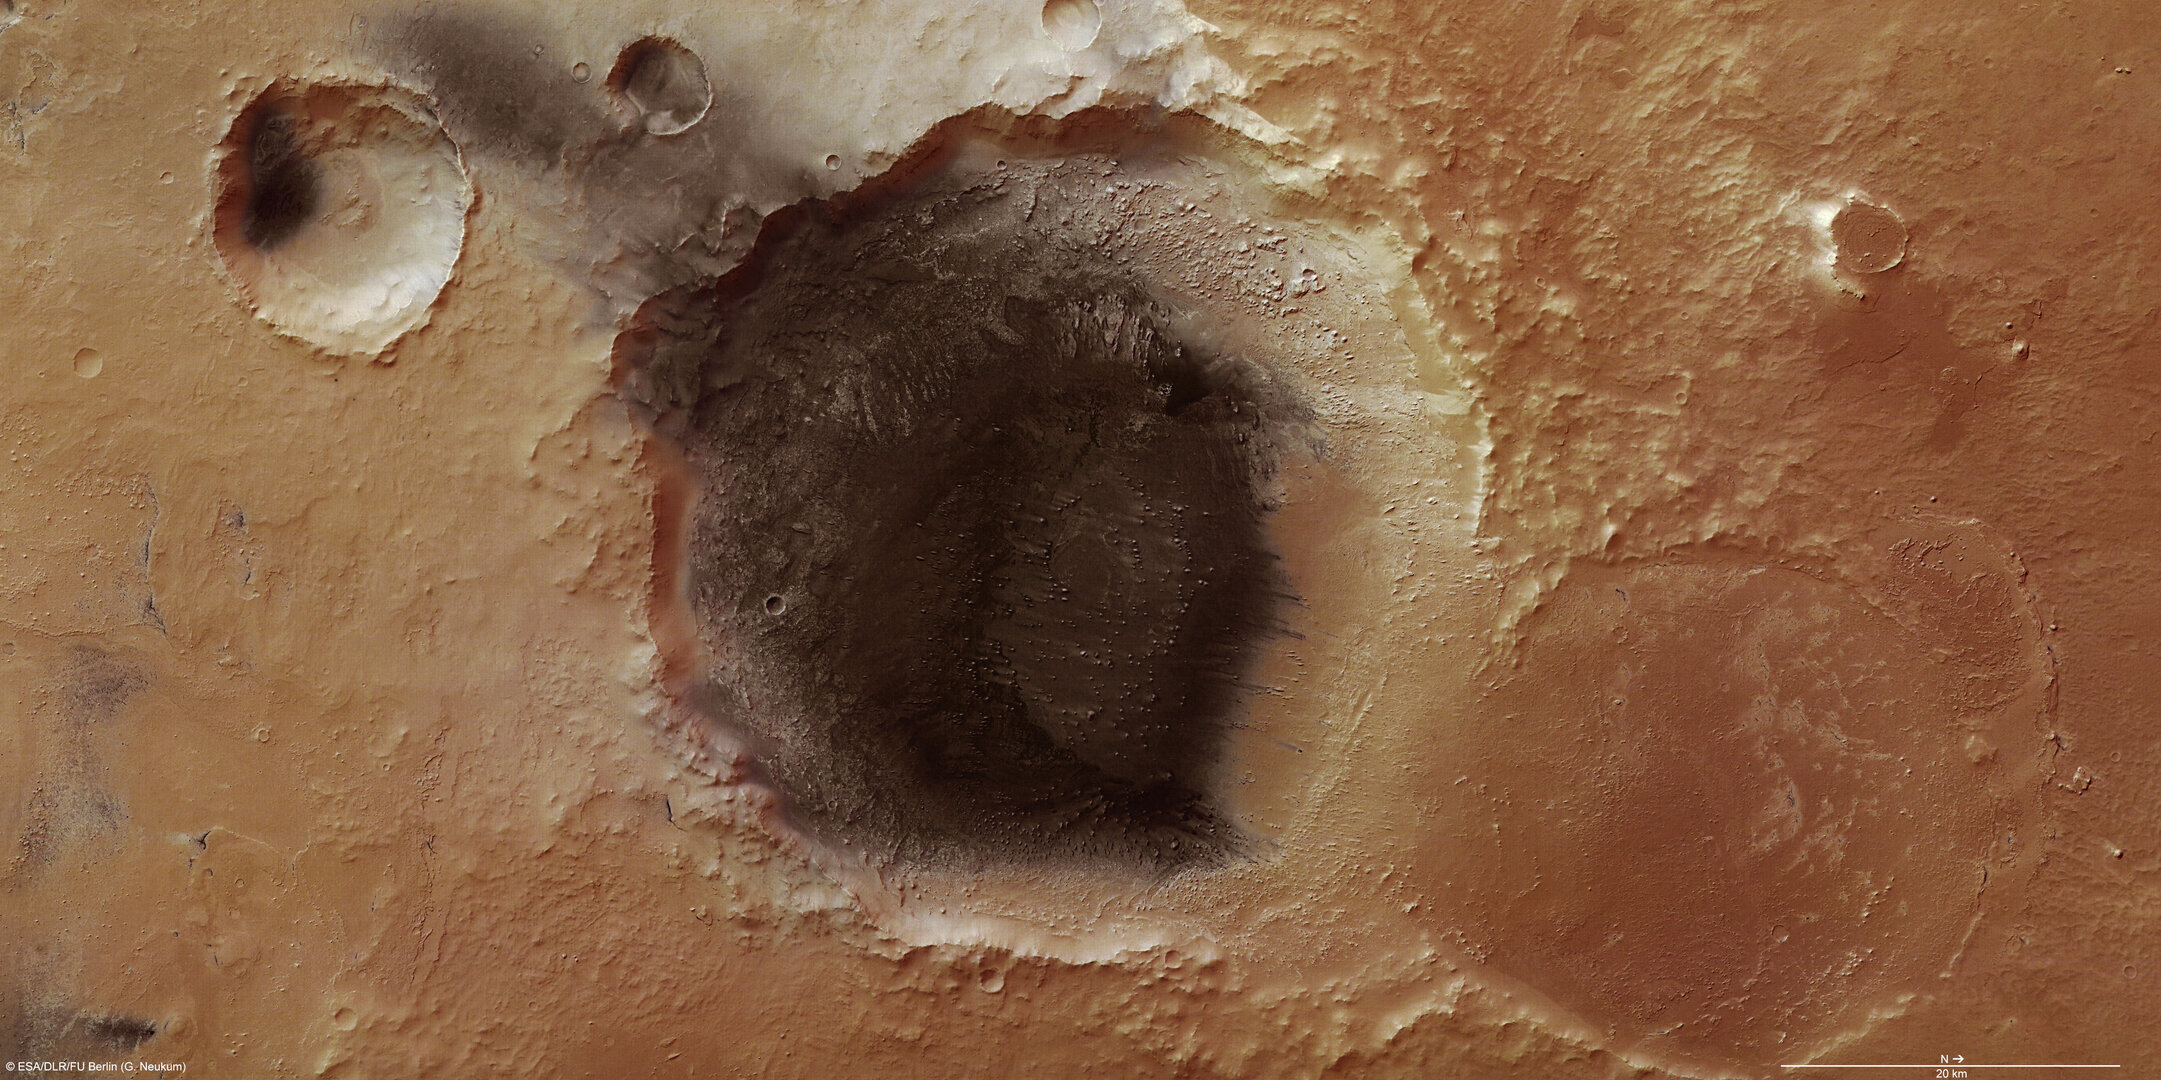 Volcanic ash deposits in Meridiani Planum